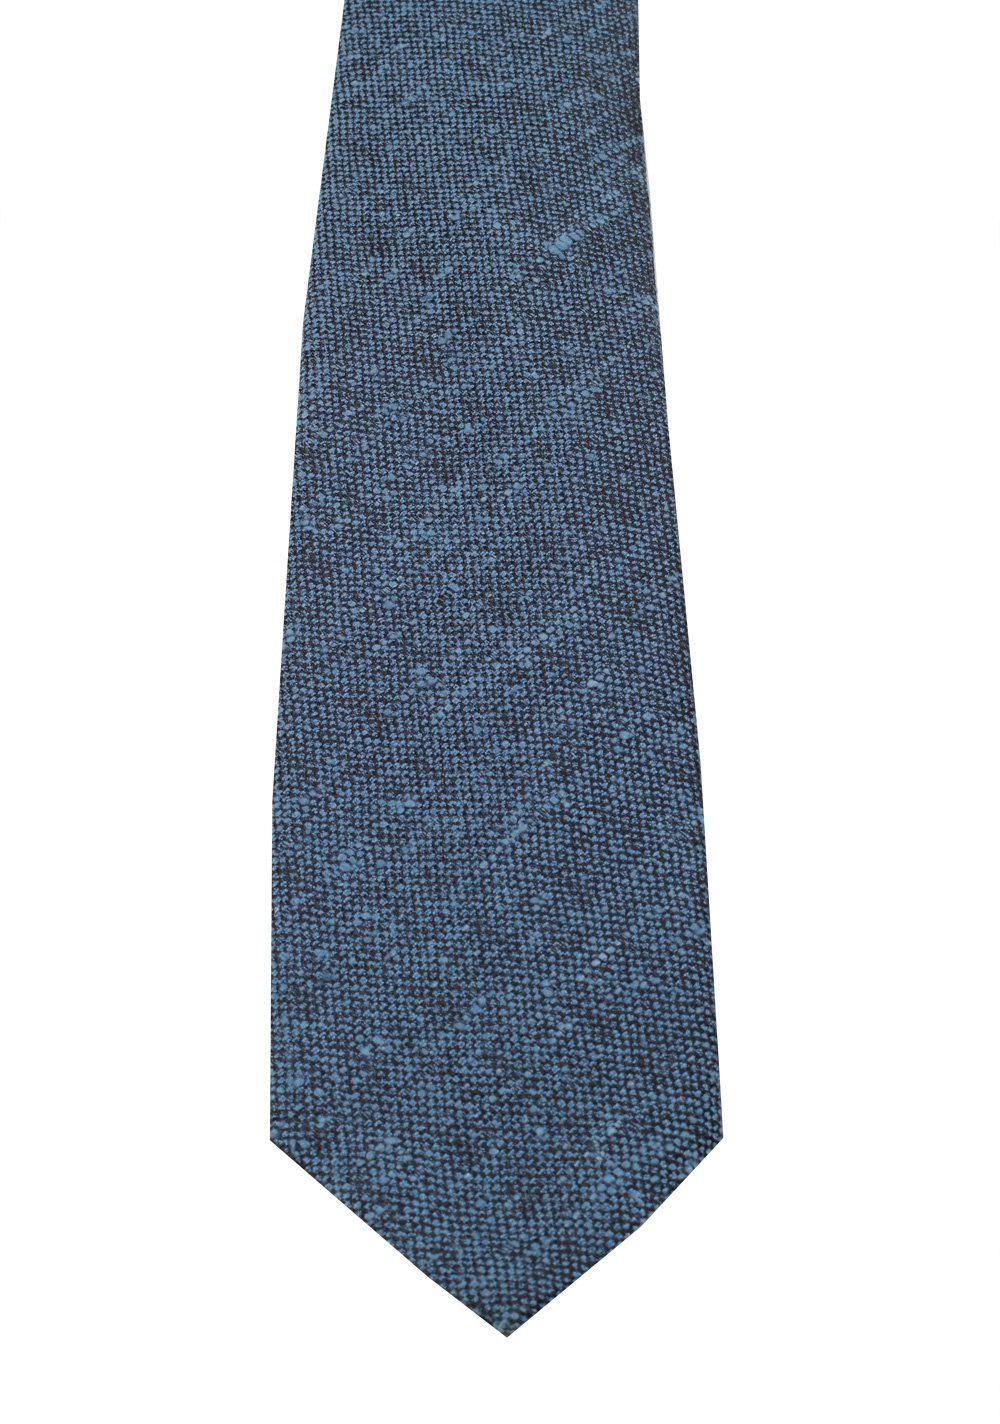 CL - TOM FORD Patterned Blue Tie In Silk